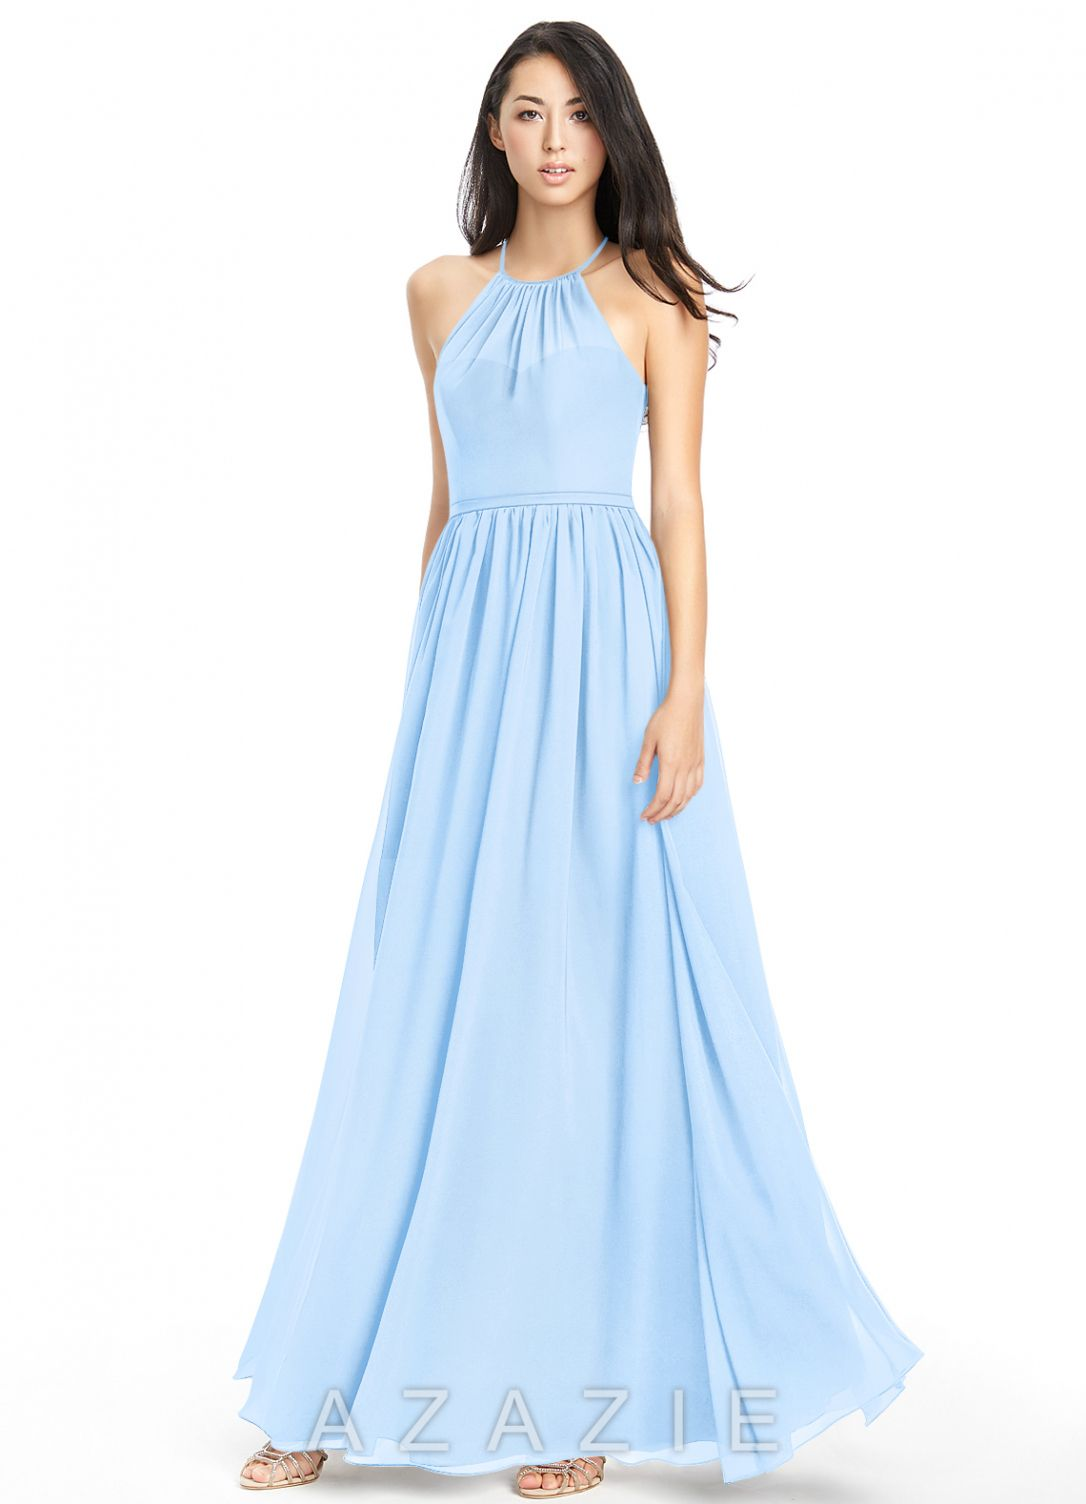 Sky Blue Wedding Dress Dresses For Plus Size Check More At Http